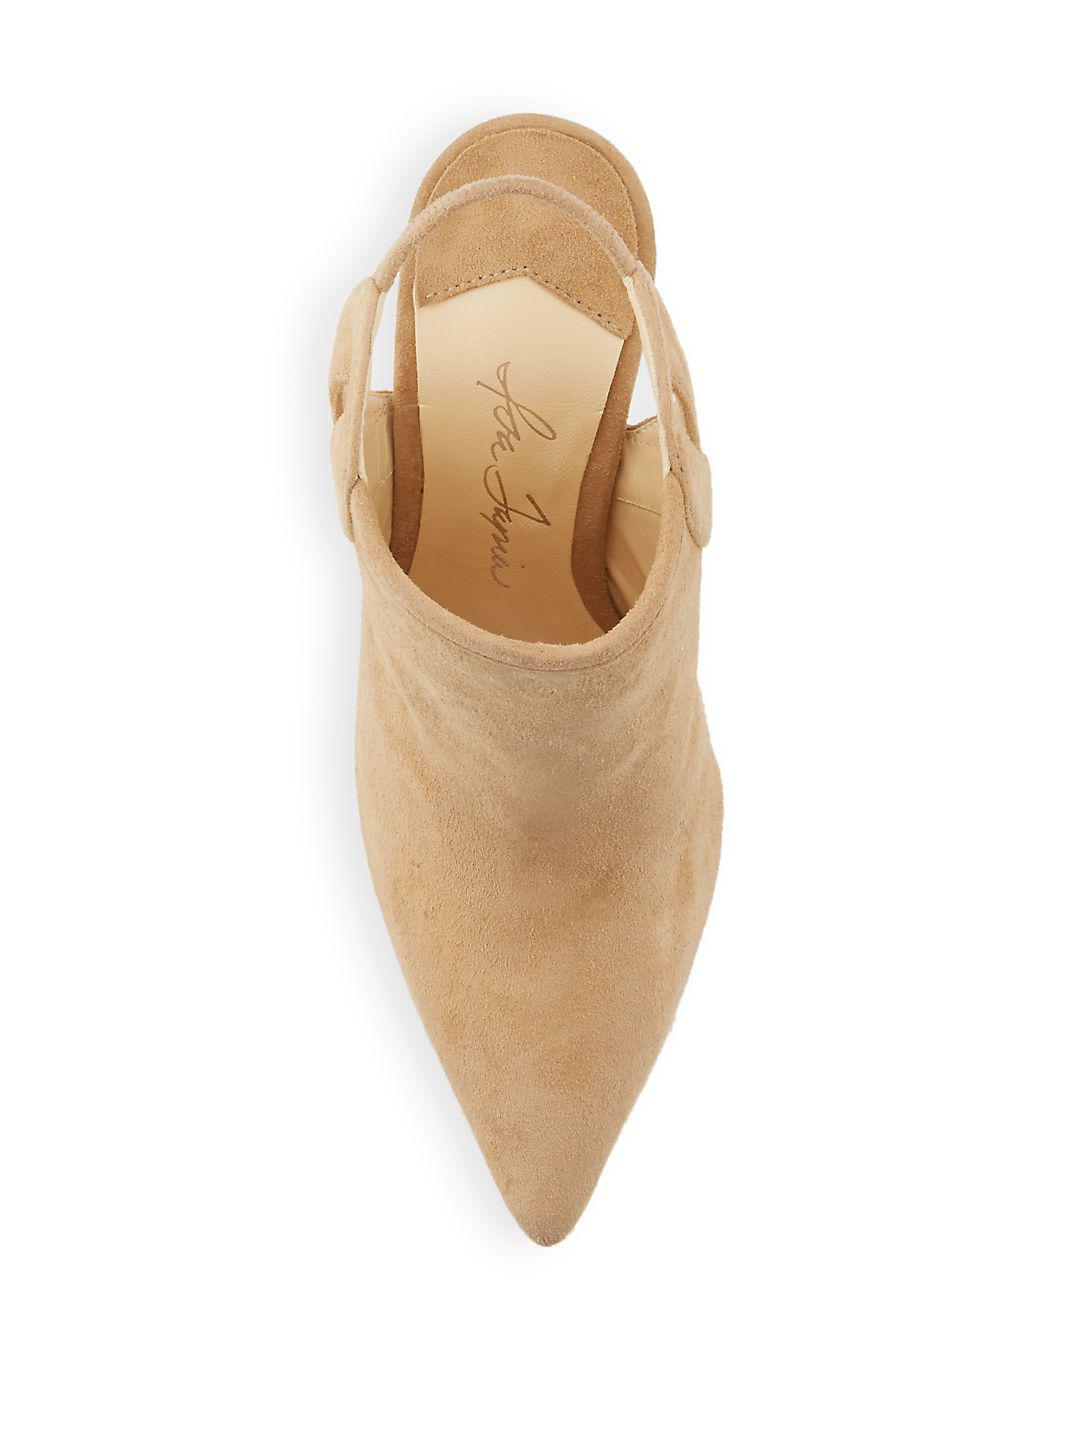 Isa Tapia Slip-on Leather Stiletto Ankle Boots in Natural